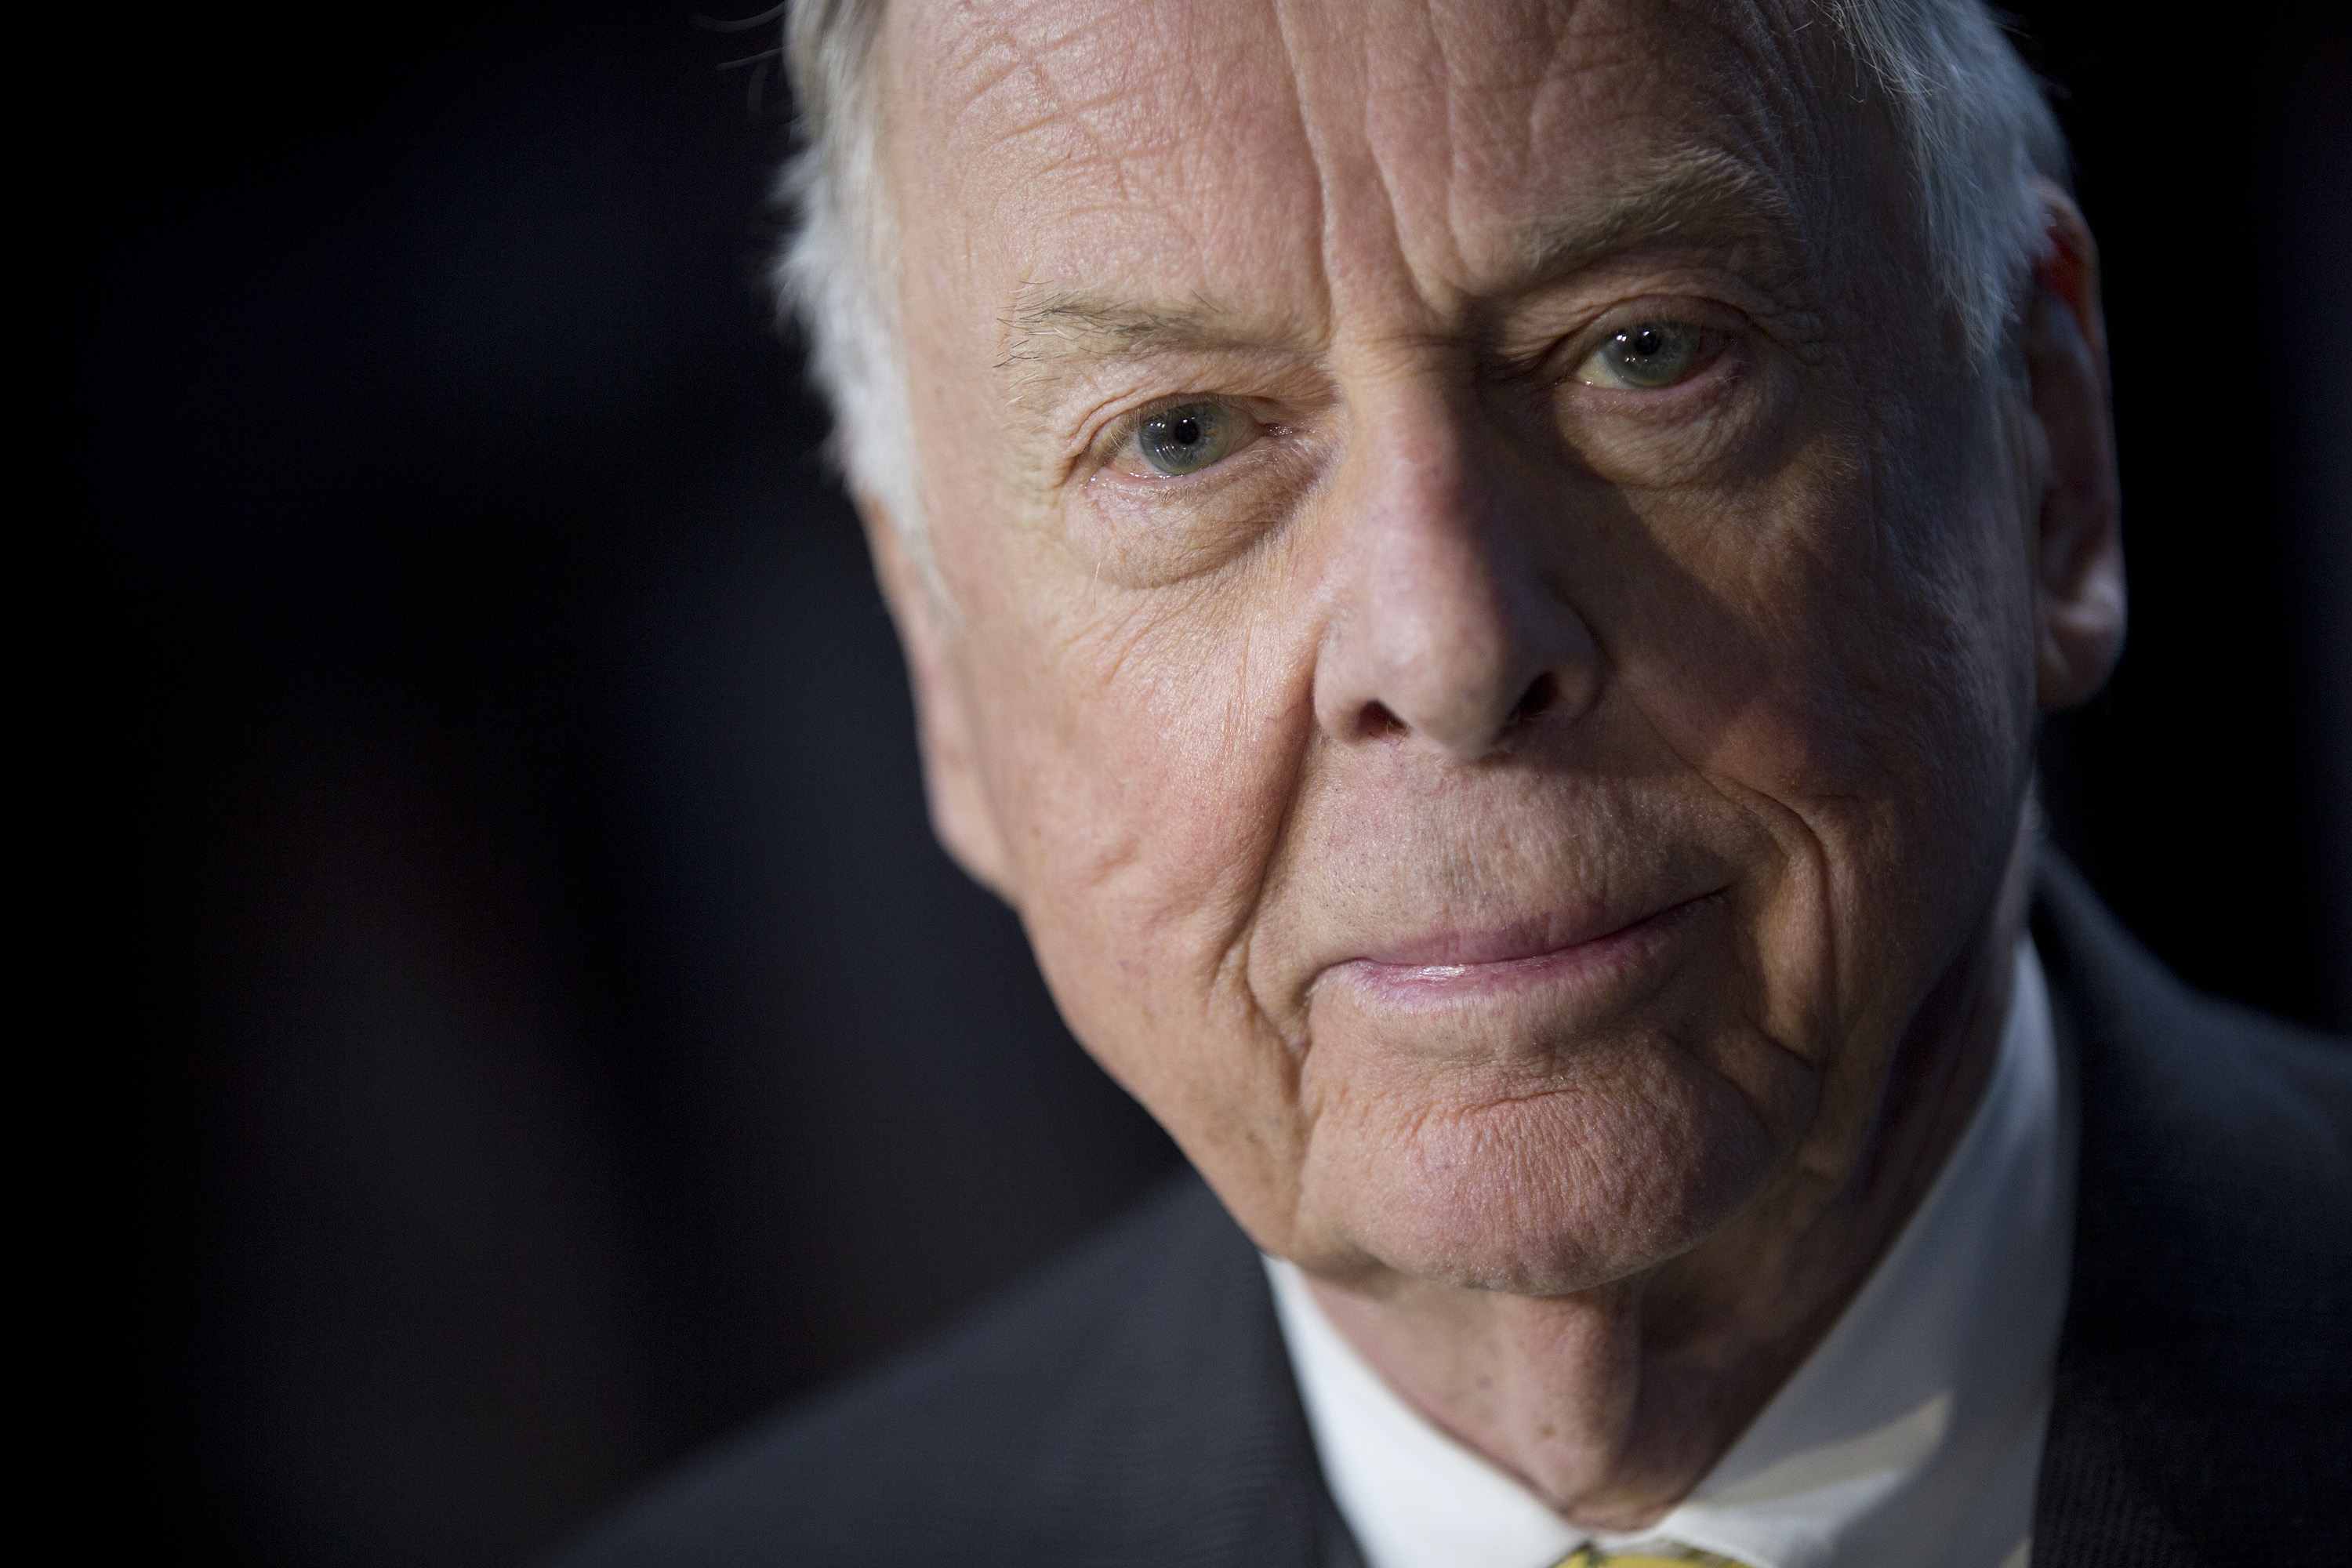 T. Boone Pickens, founder and chief executive officer of BP Capital LLC, sits for a photograph following a Bloomberg Television interview in Washington, D.C. on April 3, 2013.